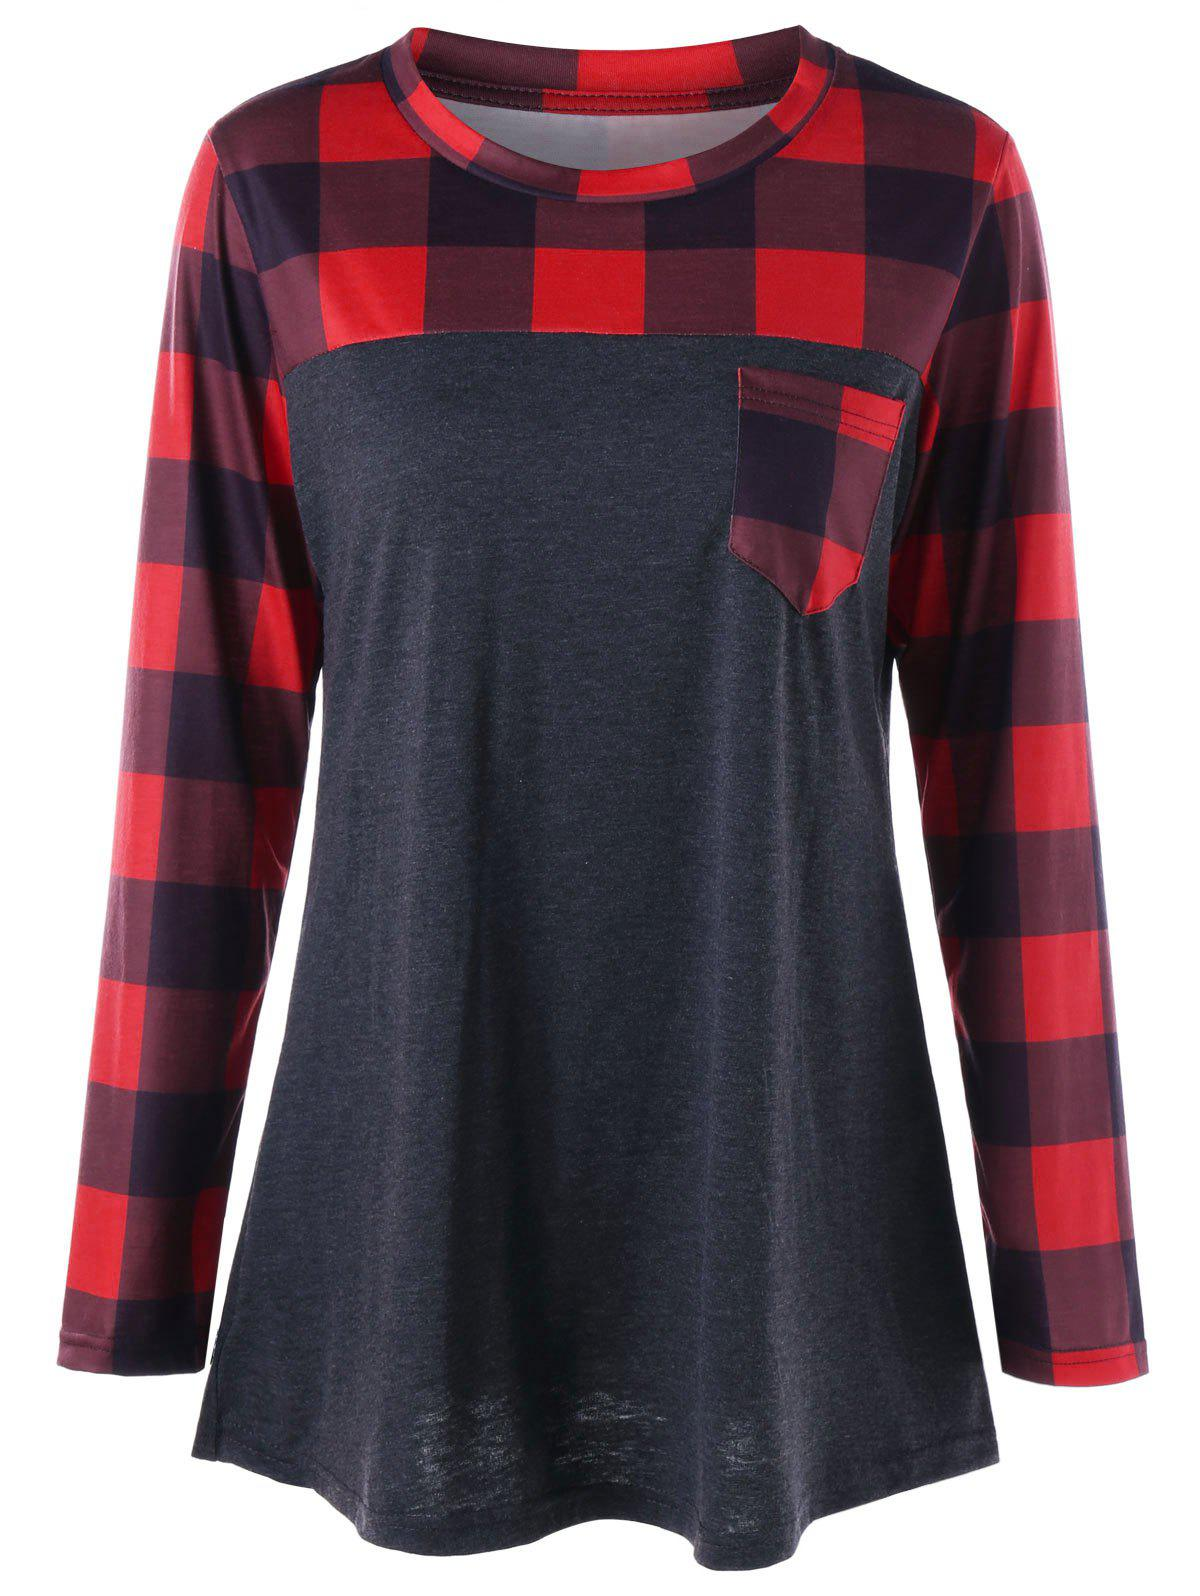 Plus Size Patch Pocket Plaid Long Sleeve T-shirtWOMEN<br><br>Size: 5XL; Color: RED WITH BLACK; Material: Polyester,Spandex; Shirt Length: Long; Sleeve Length: Full; Collar: Round Neck; Style: Casual; Season: Fall,Spring; Pattern Type: Plaid; Weight: 0.3400kg; Package Contents: 1 x T-shirt;